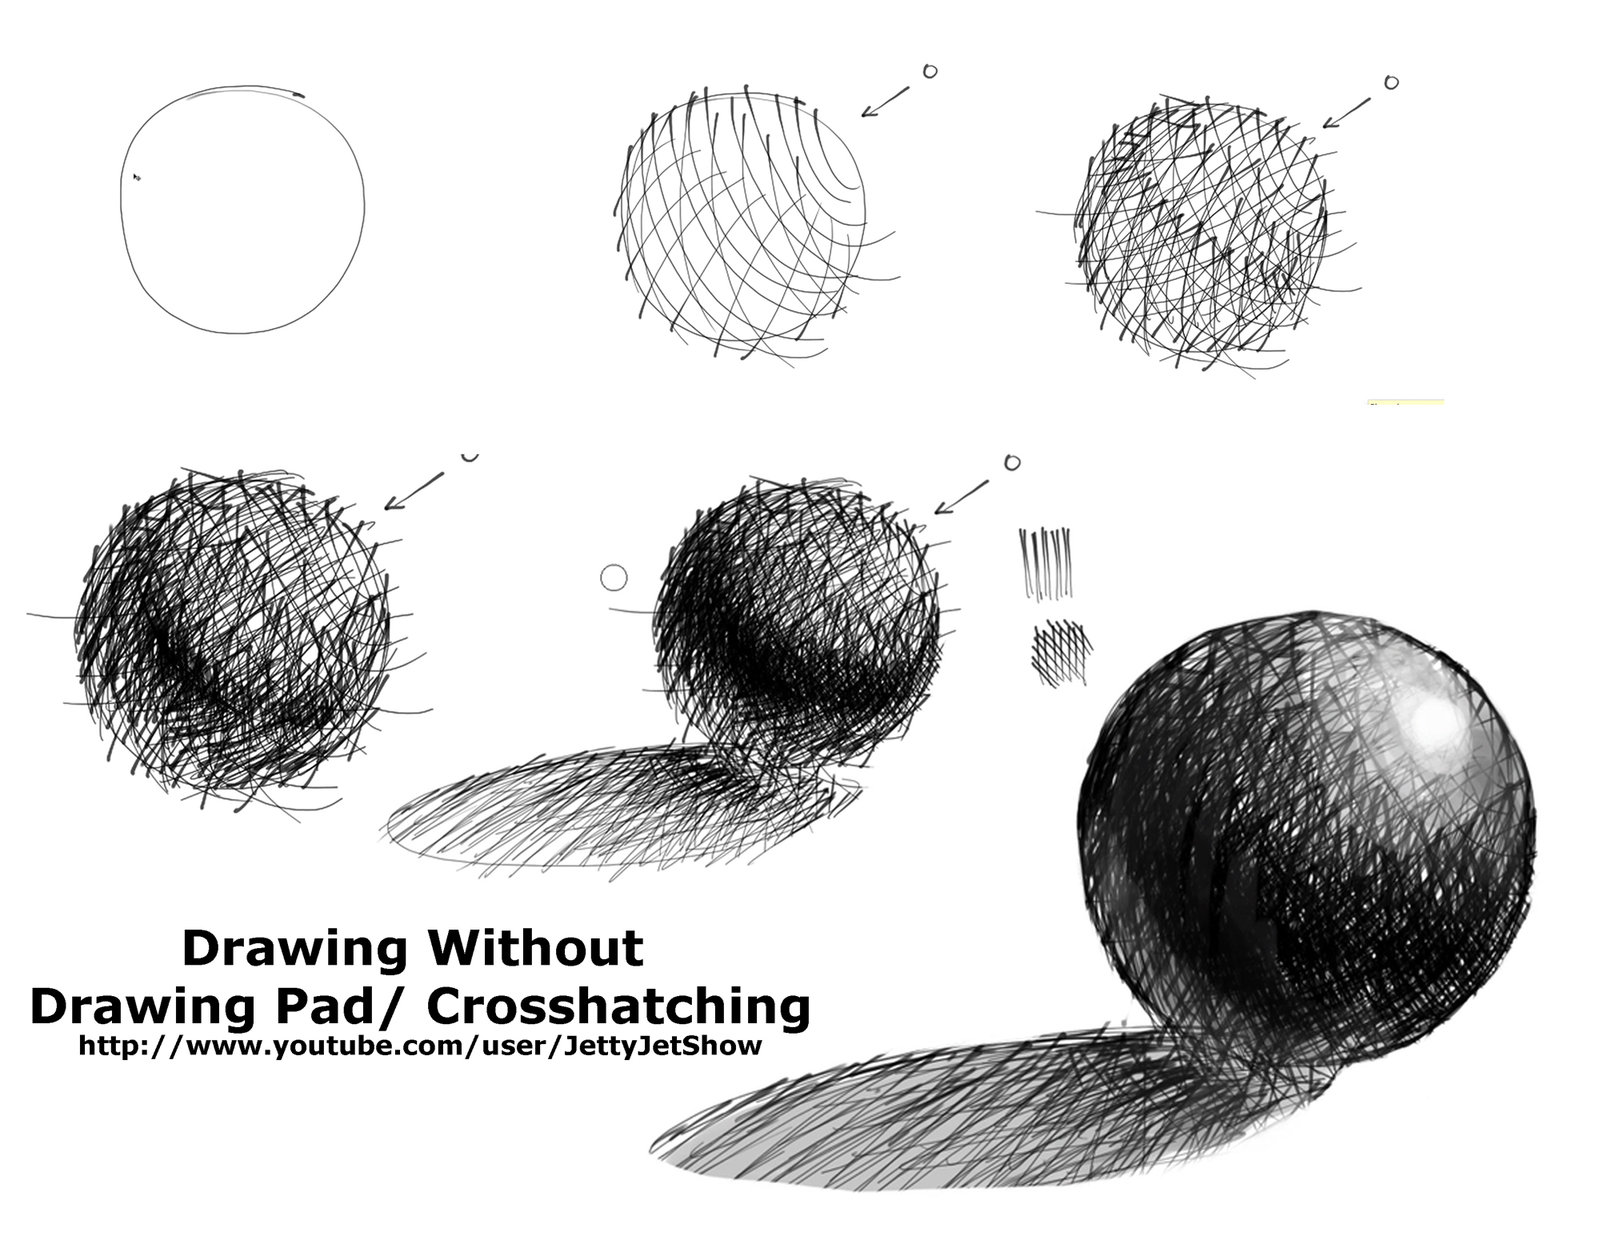 Drawn spheric chiaroscuro Hatch sphere in sphere on